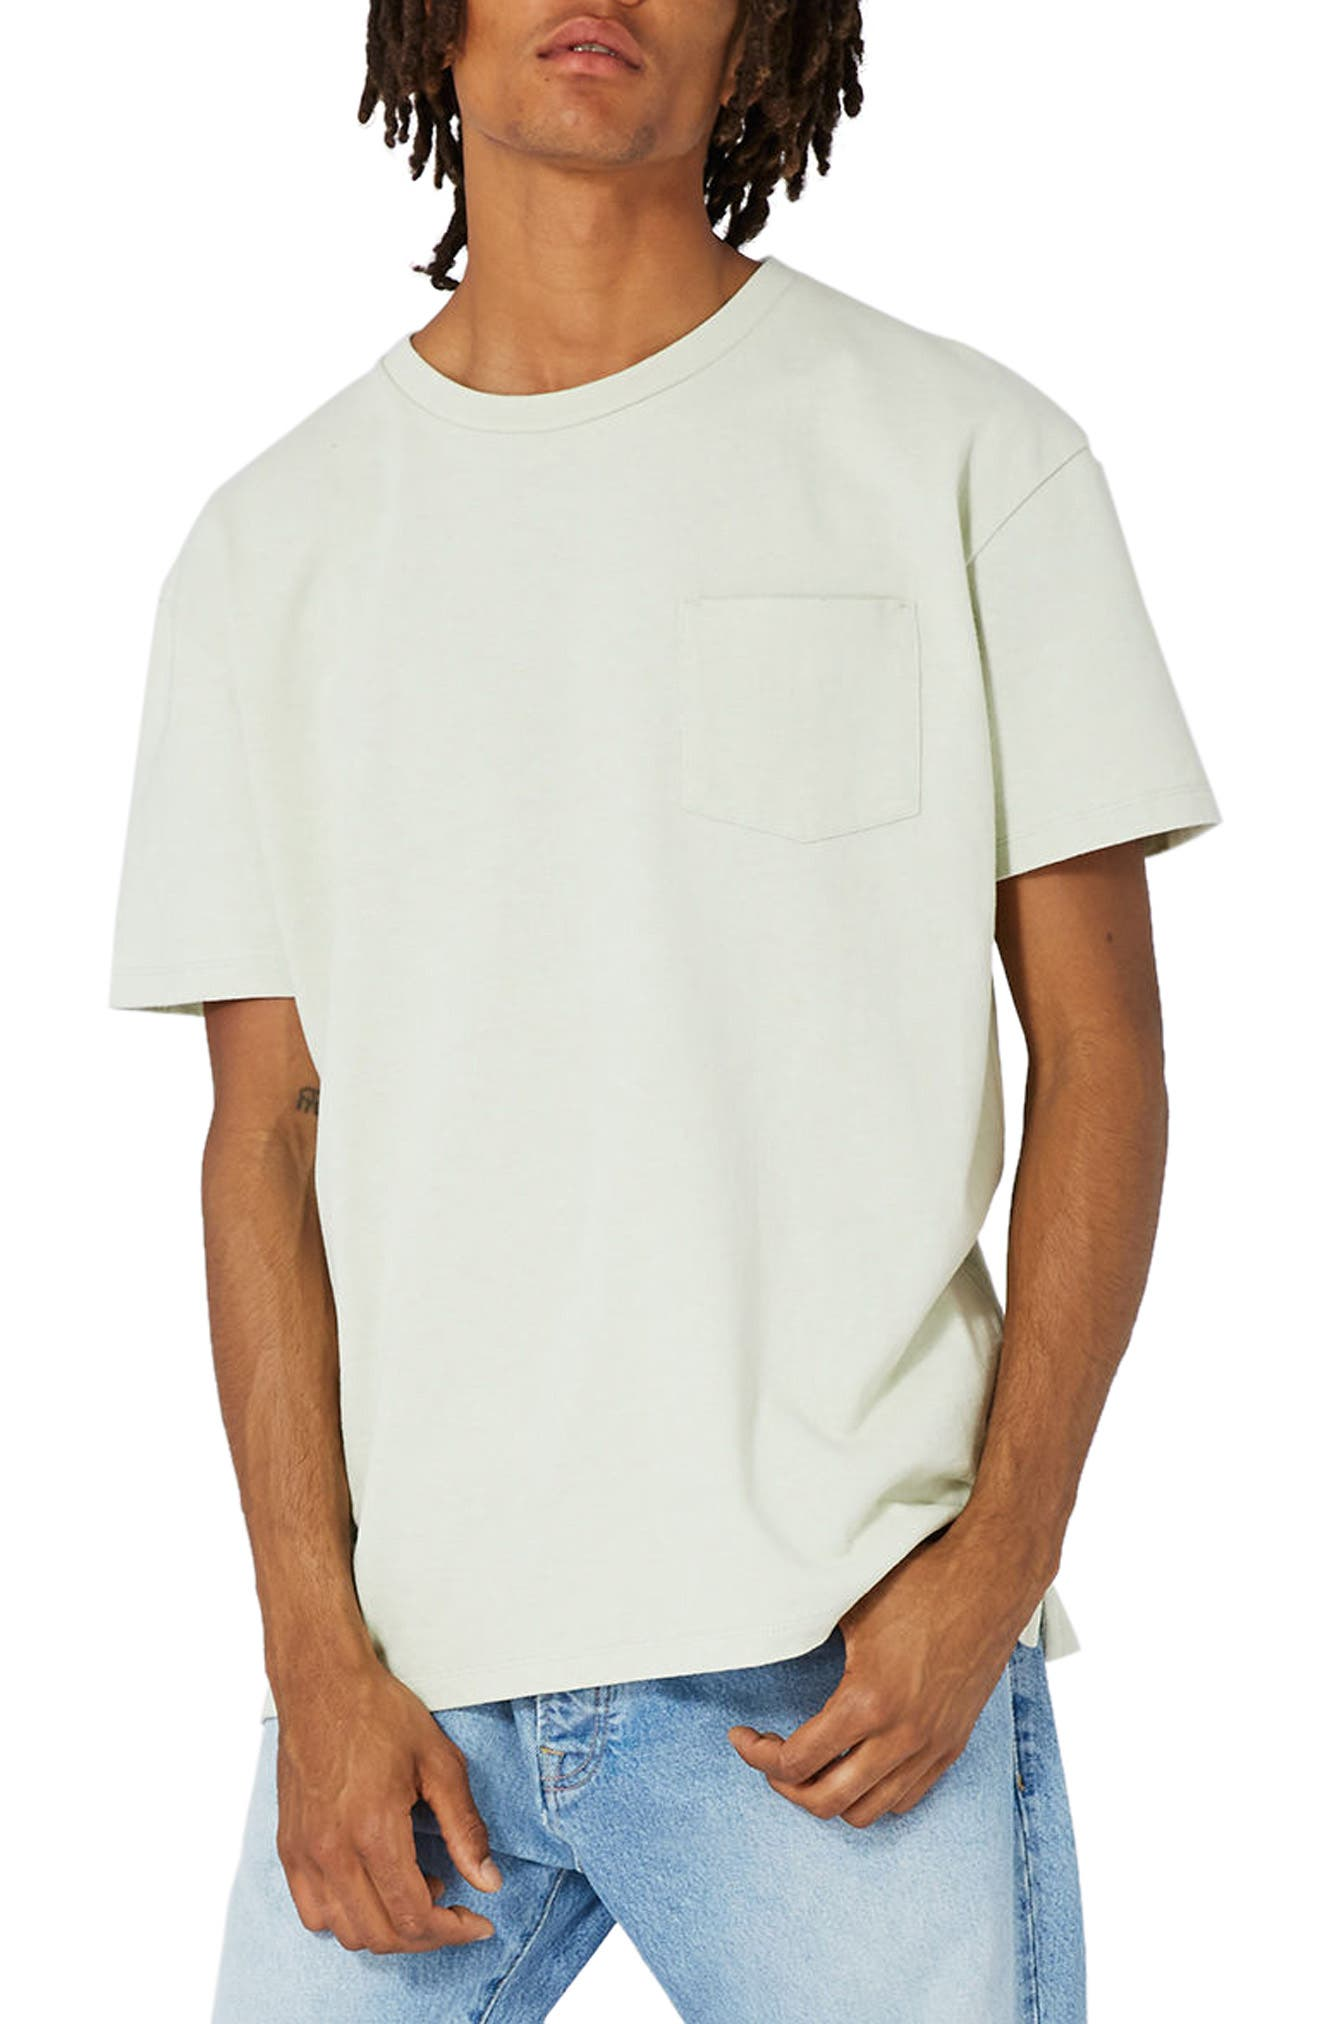 Topman LTD Collection Washed Embroidered T-Shirt